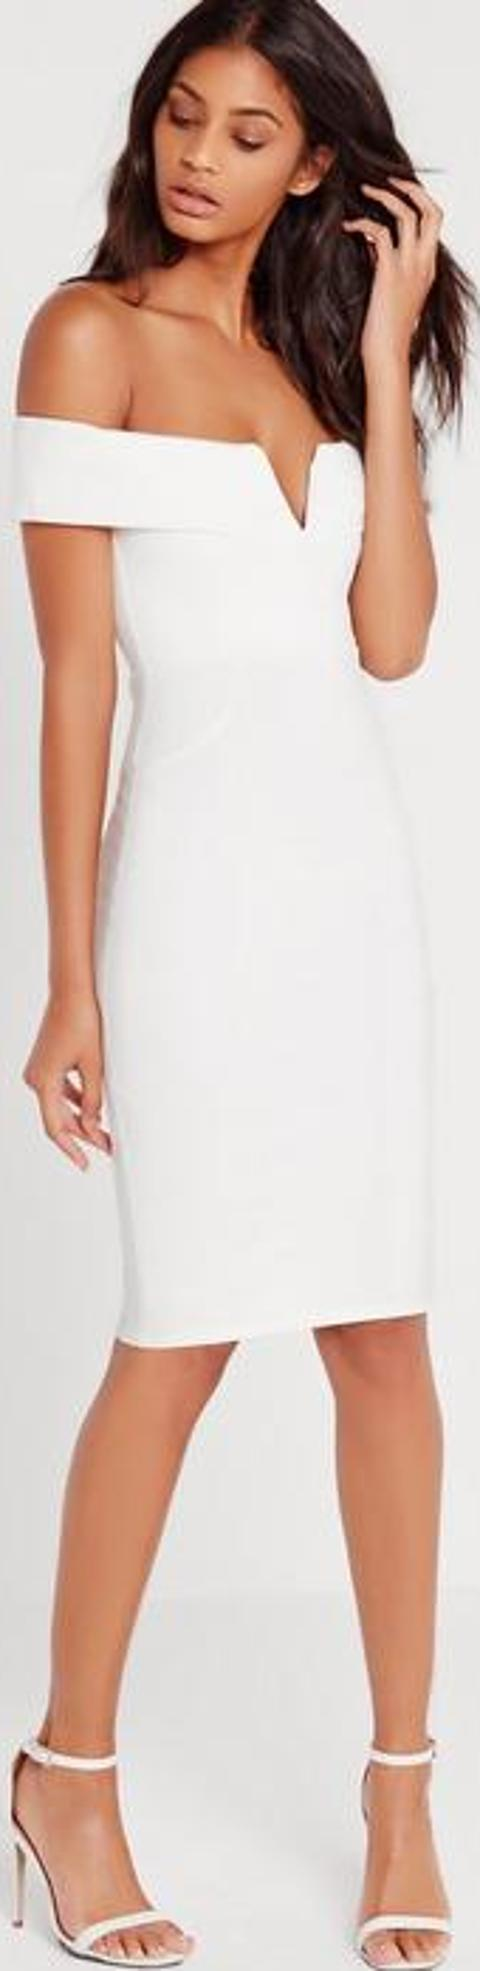 51d32416078d missguided V Front Bardot Midi Dress White | Obsessory